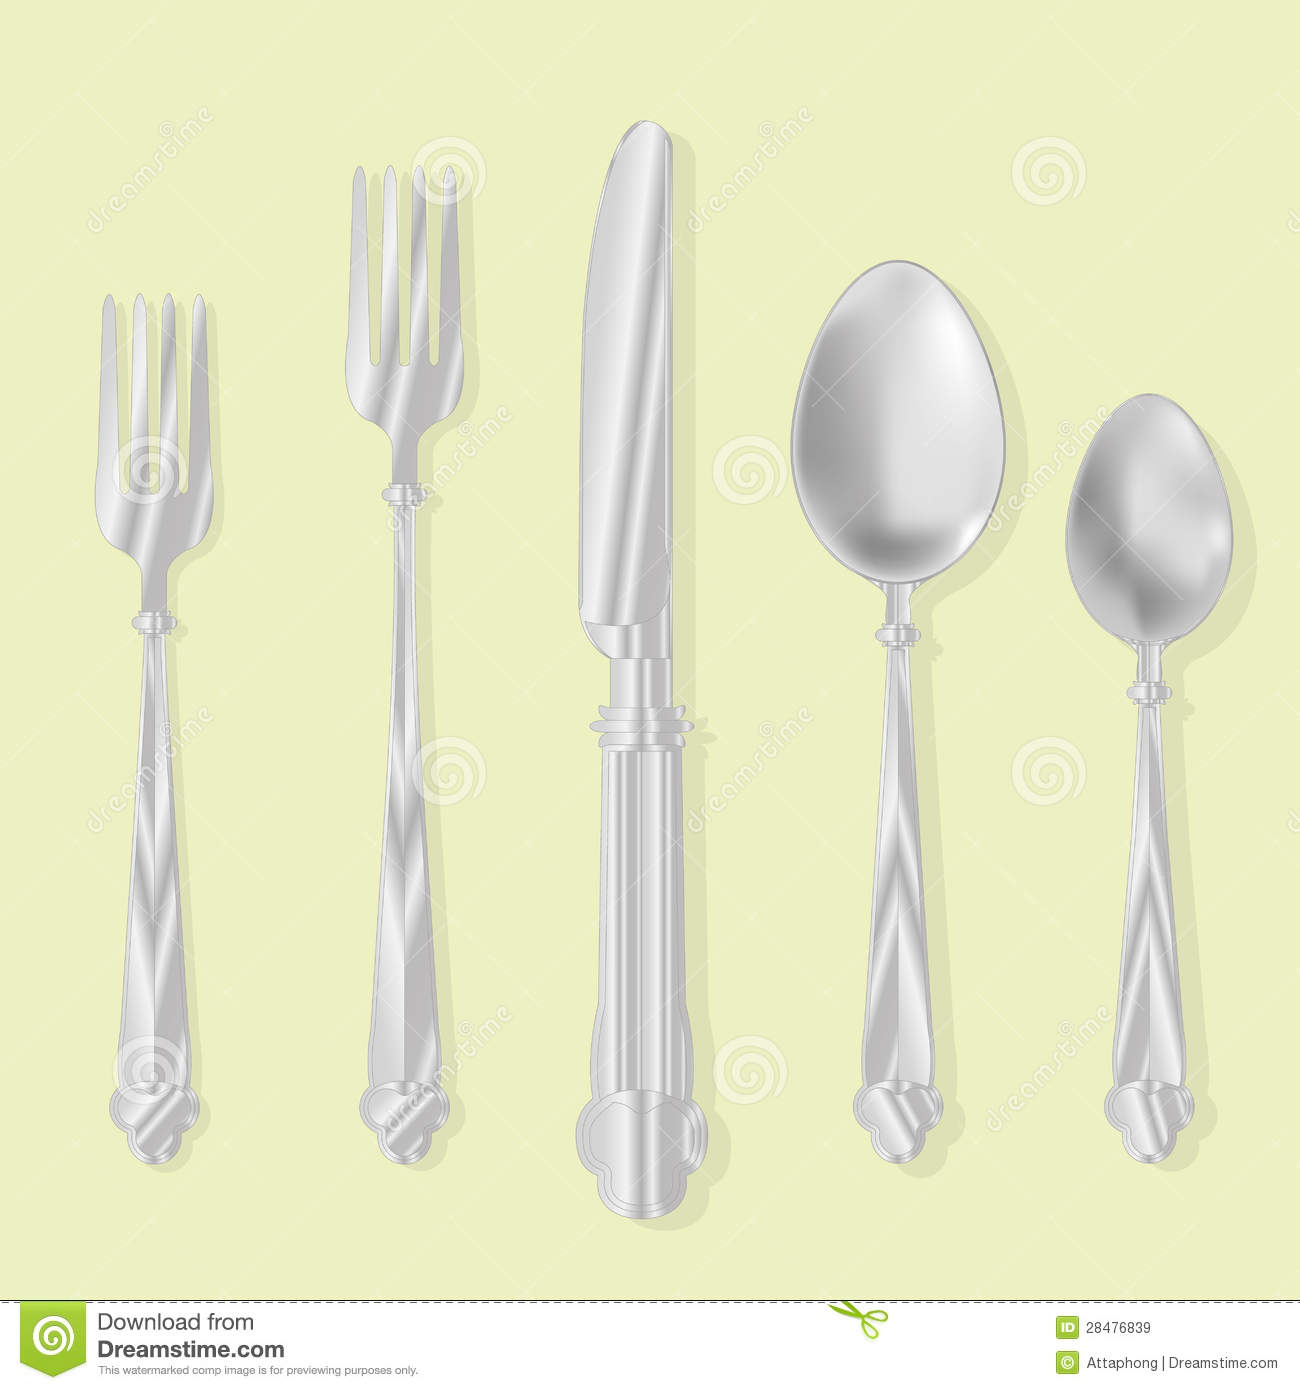 Eating Utensils Vector Royalty Free Stock Images - Image ...